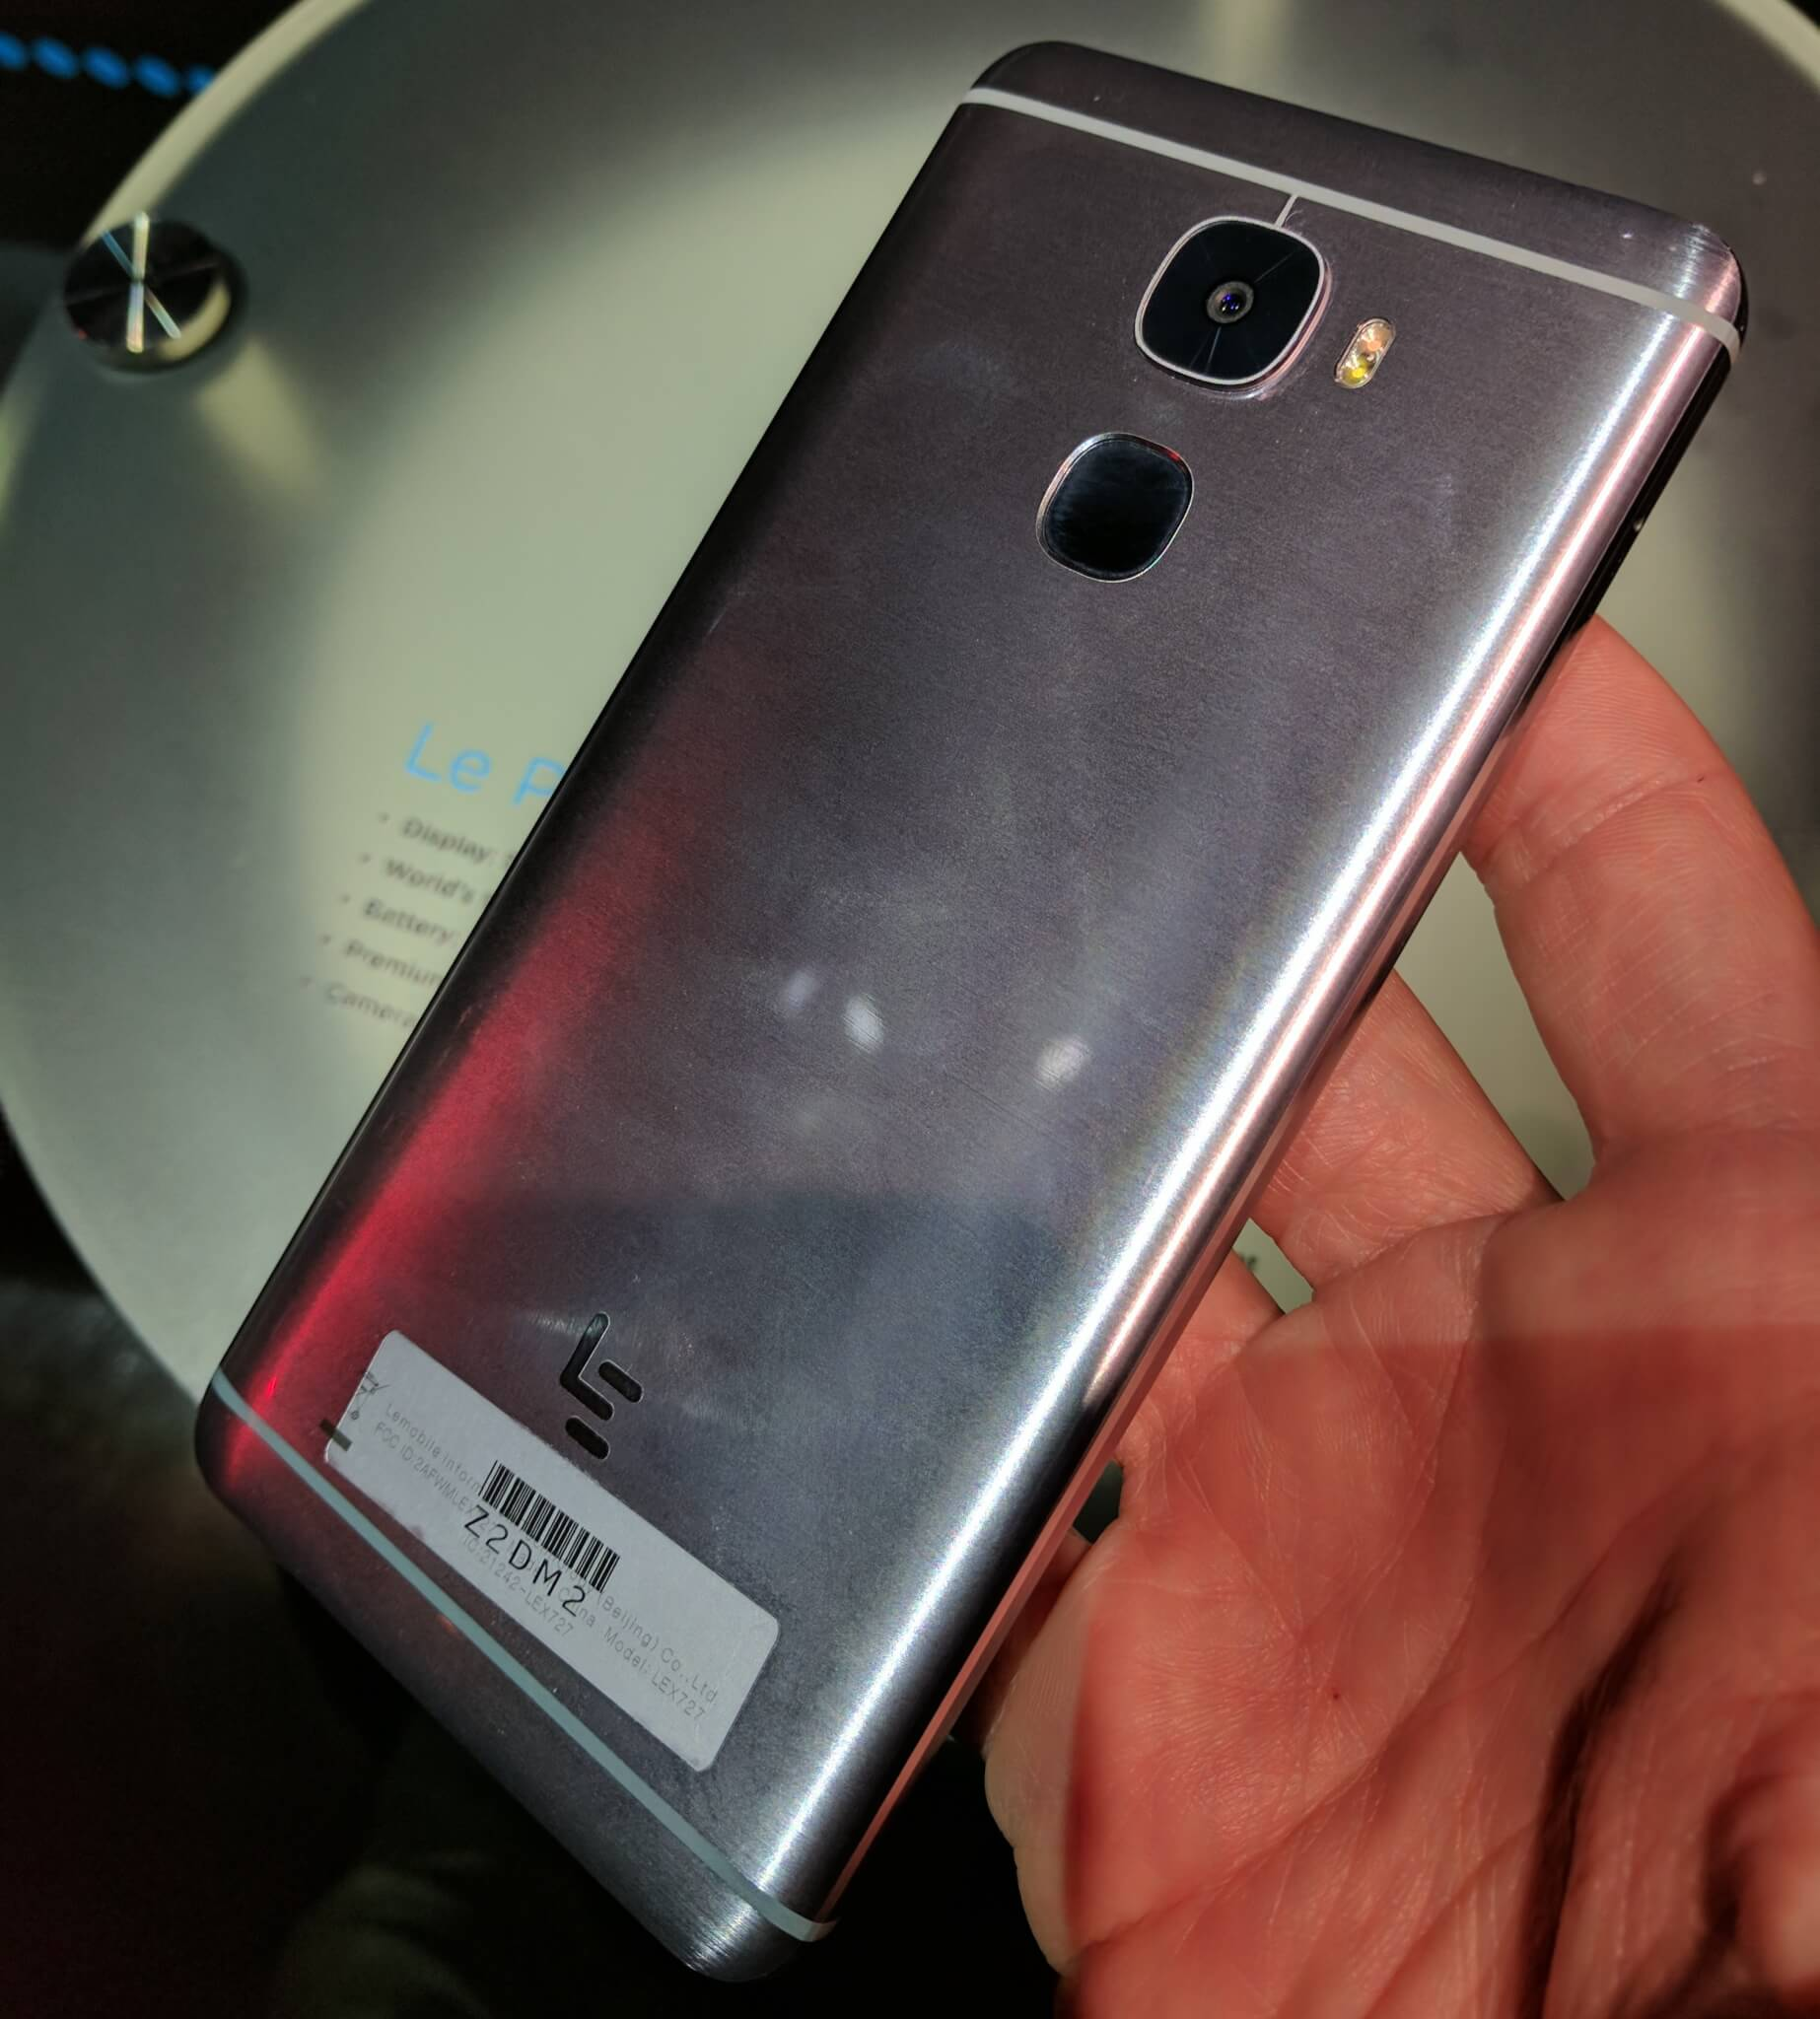 The back of the LeEco Le Pro3.